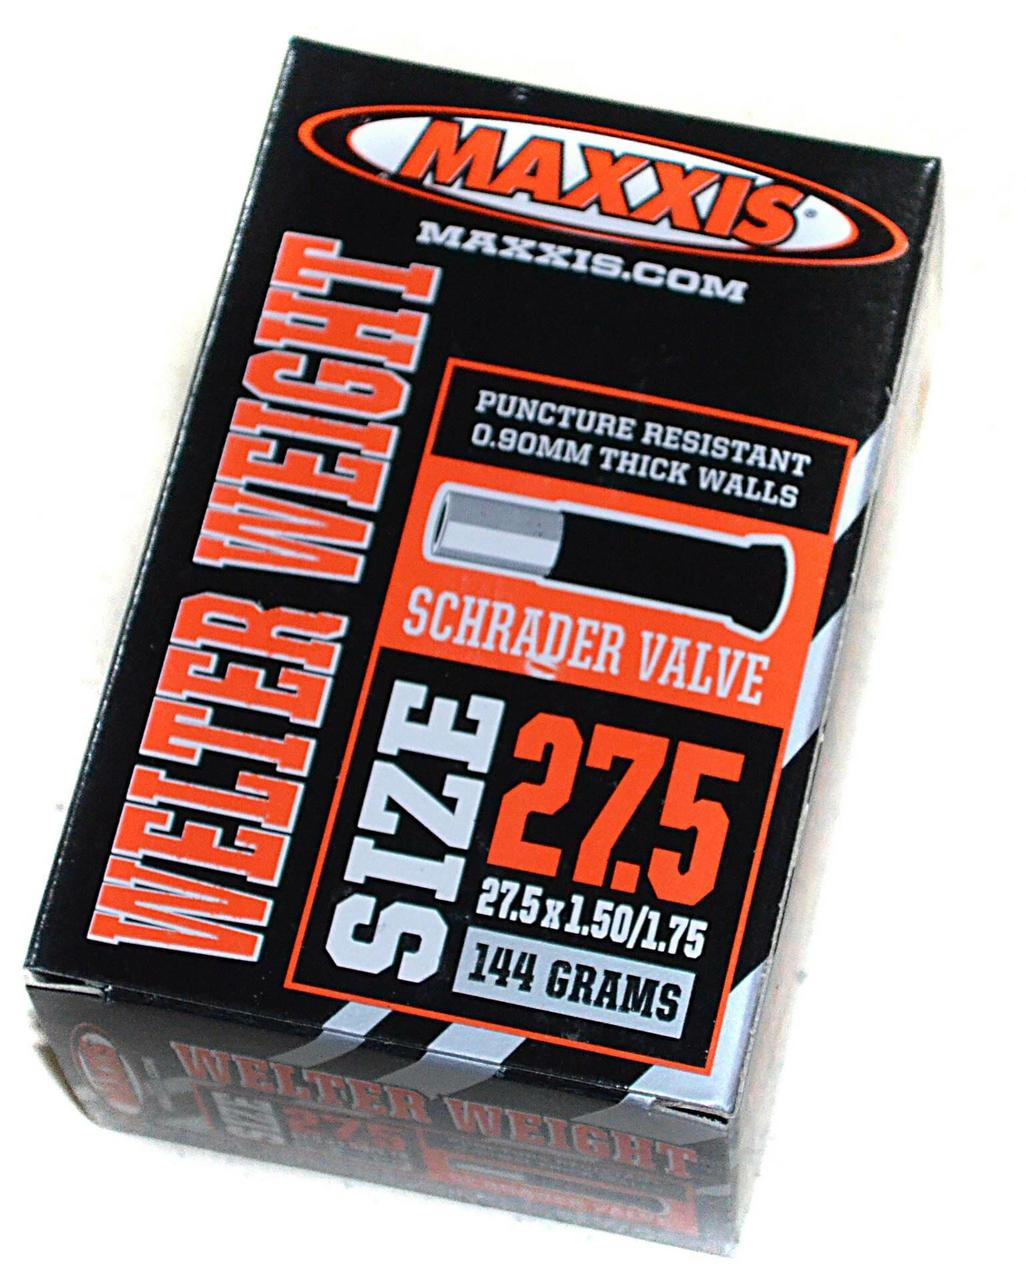 Камера Maxxis Welter Weight (IB75081700) 27.5x1.50/1.75 FV